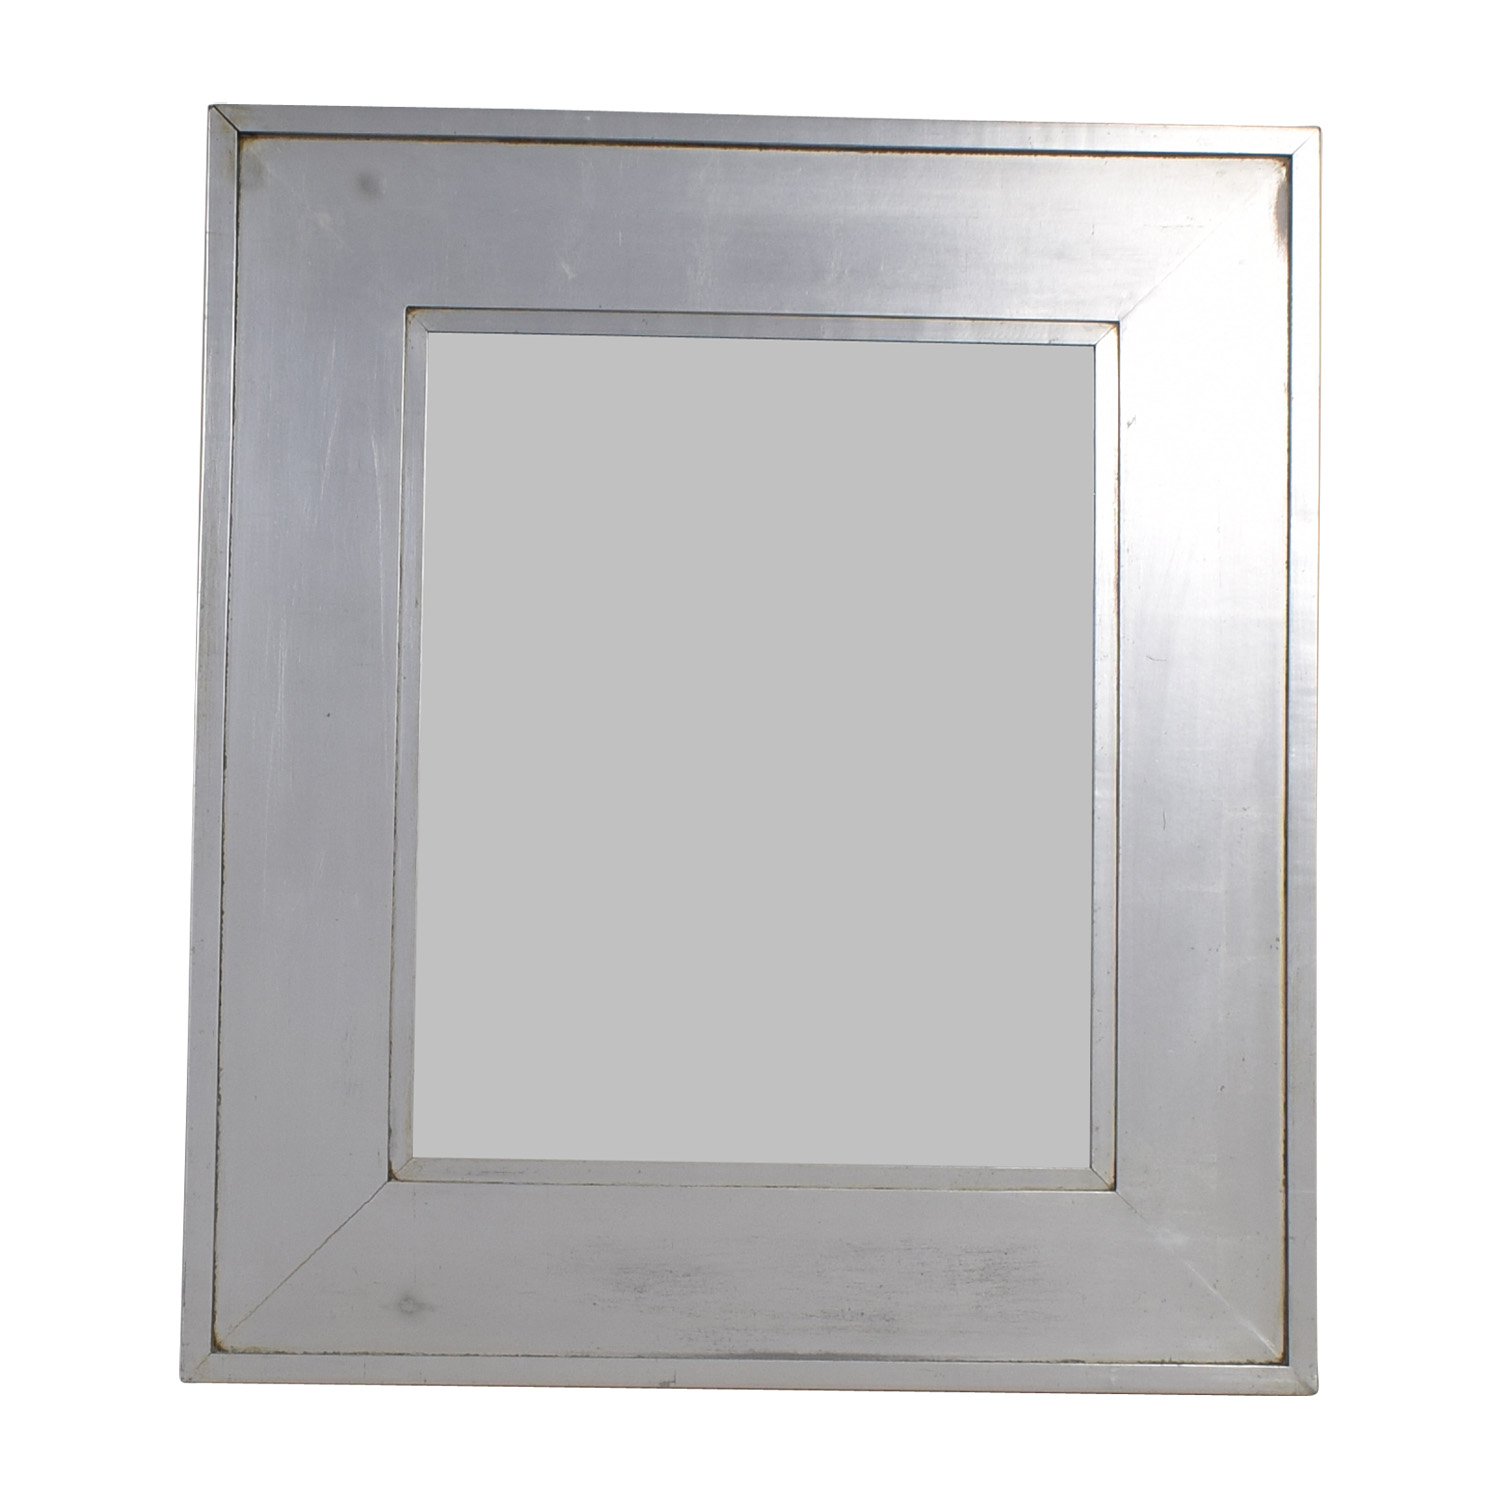 Crate & Barrel Crate & Barrel Silver Frames Square Mirror for sale